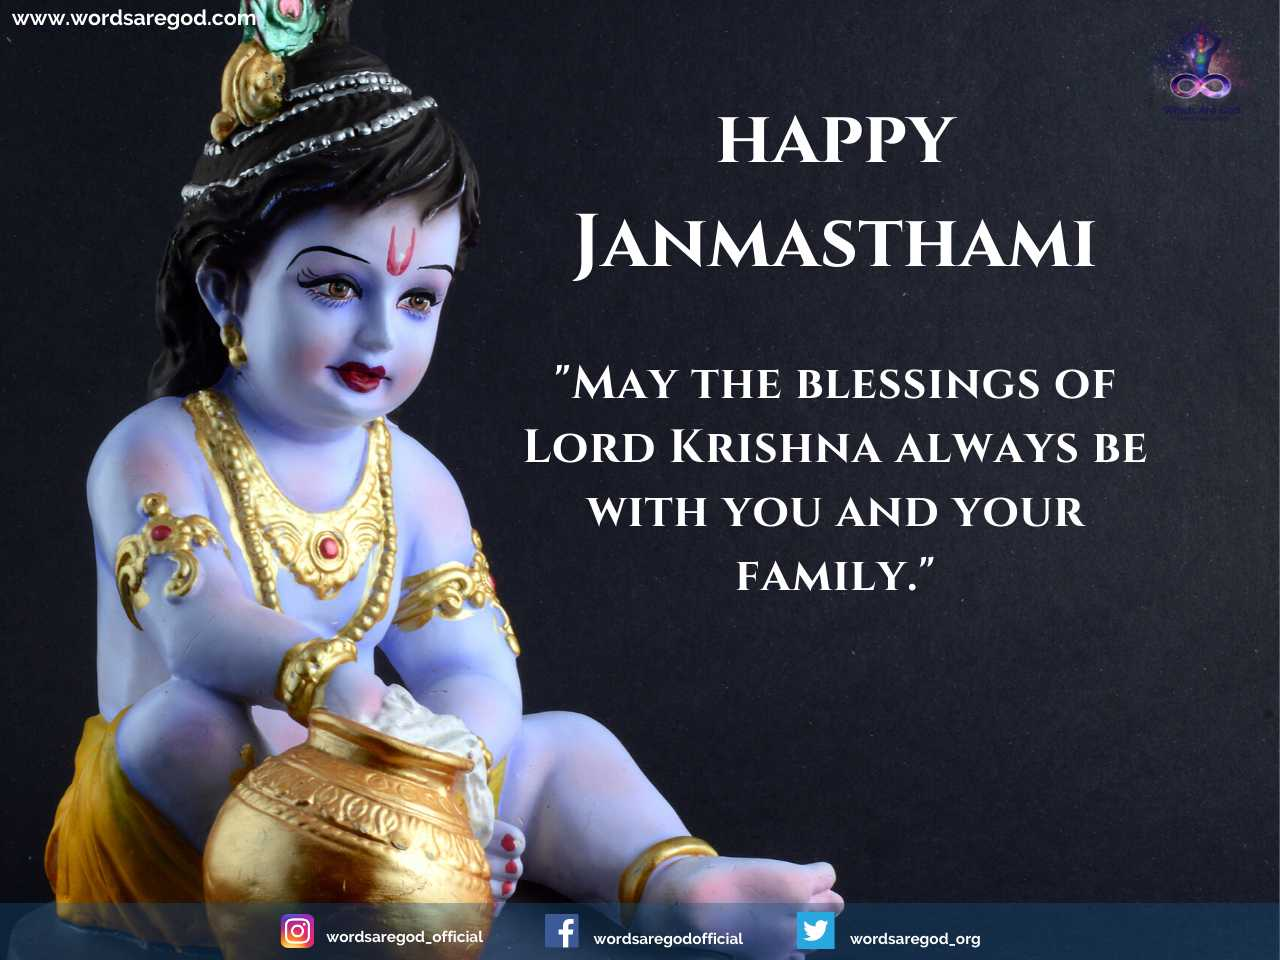 Happy Janmasthami 2022 by Events and Festival